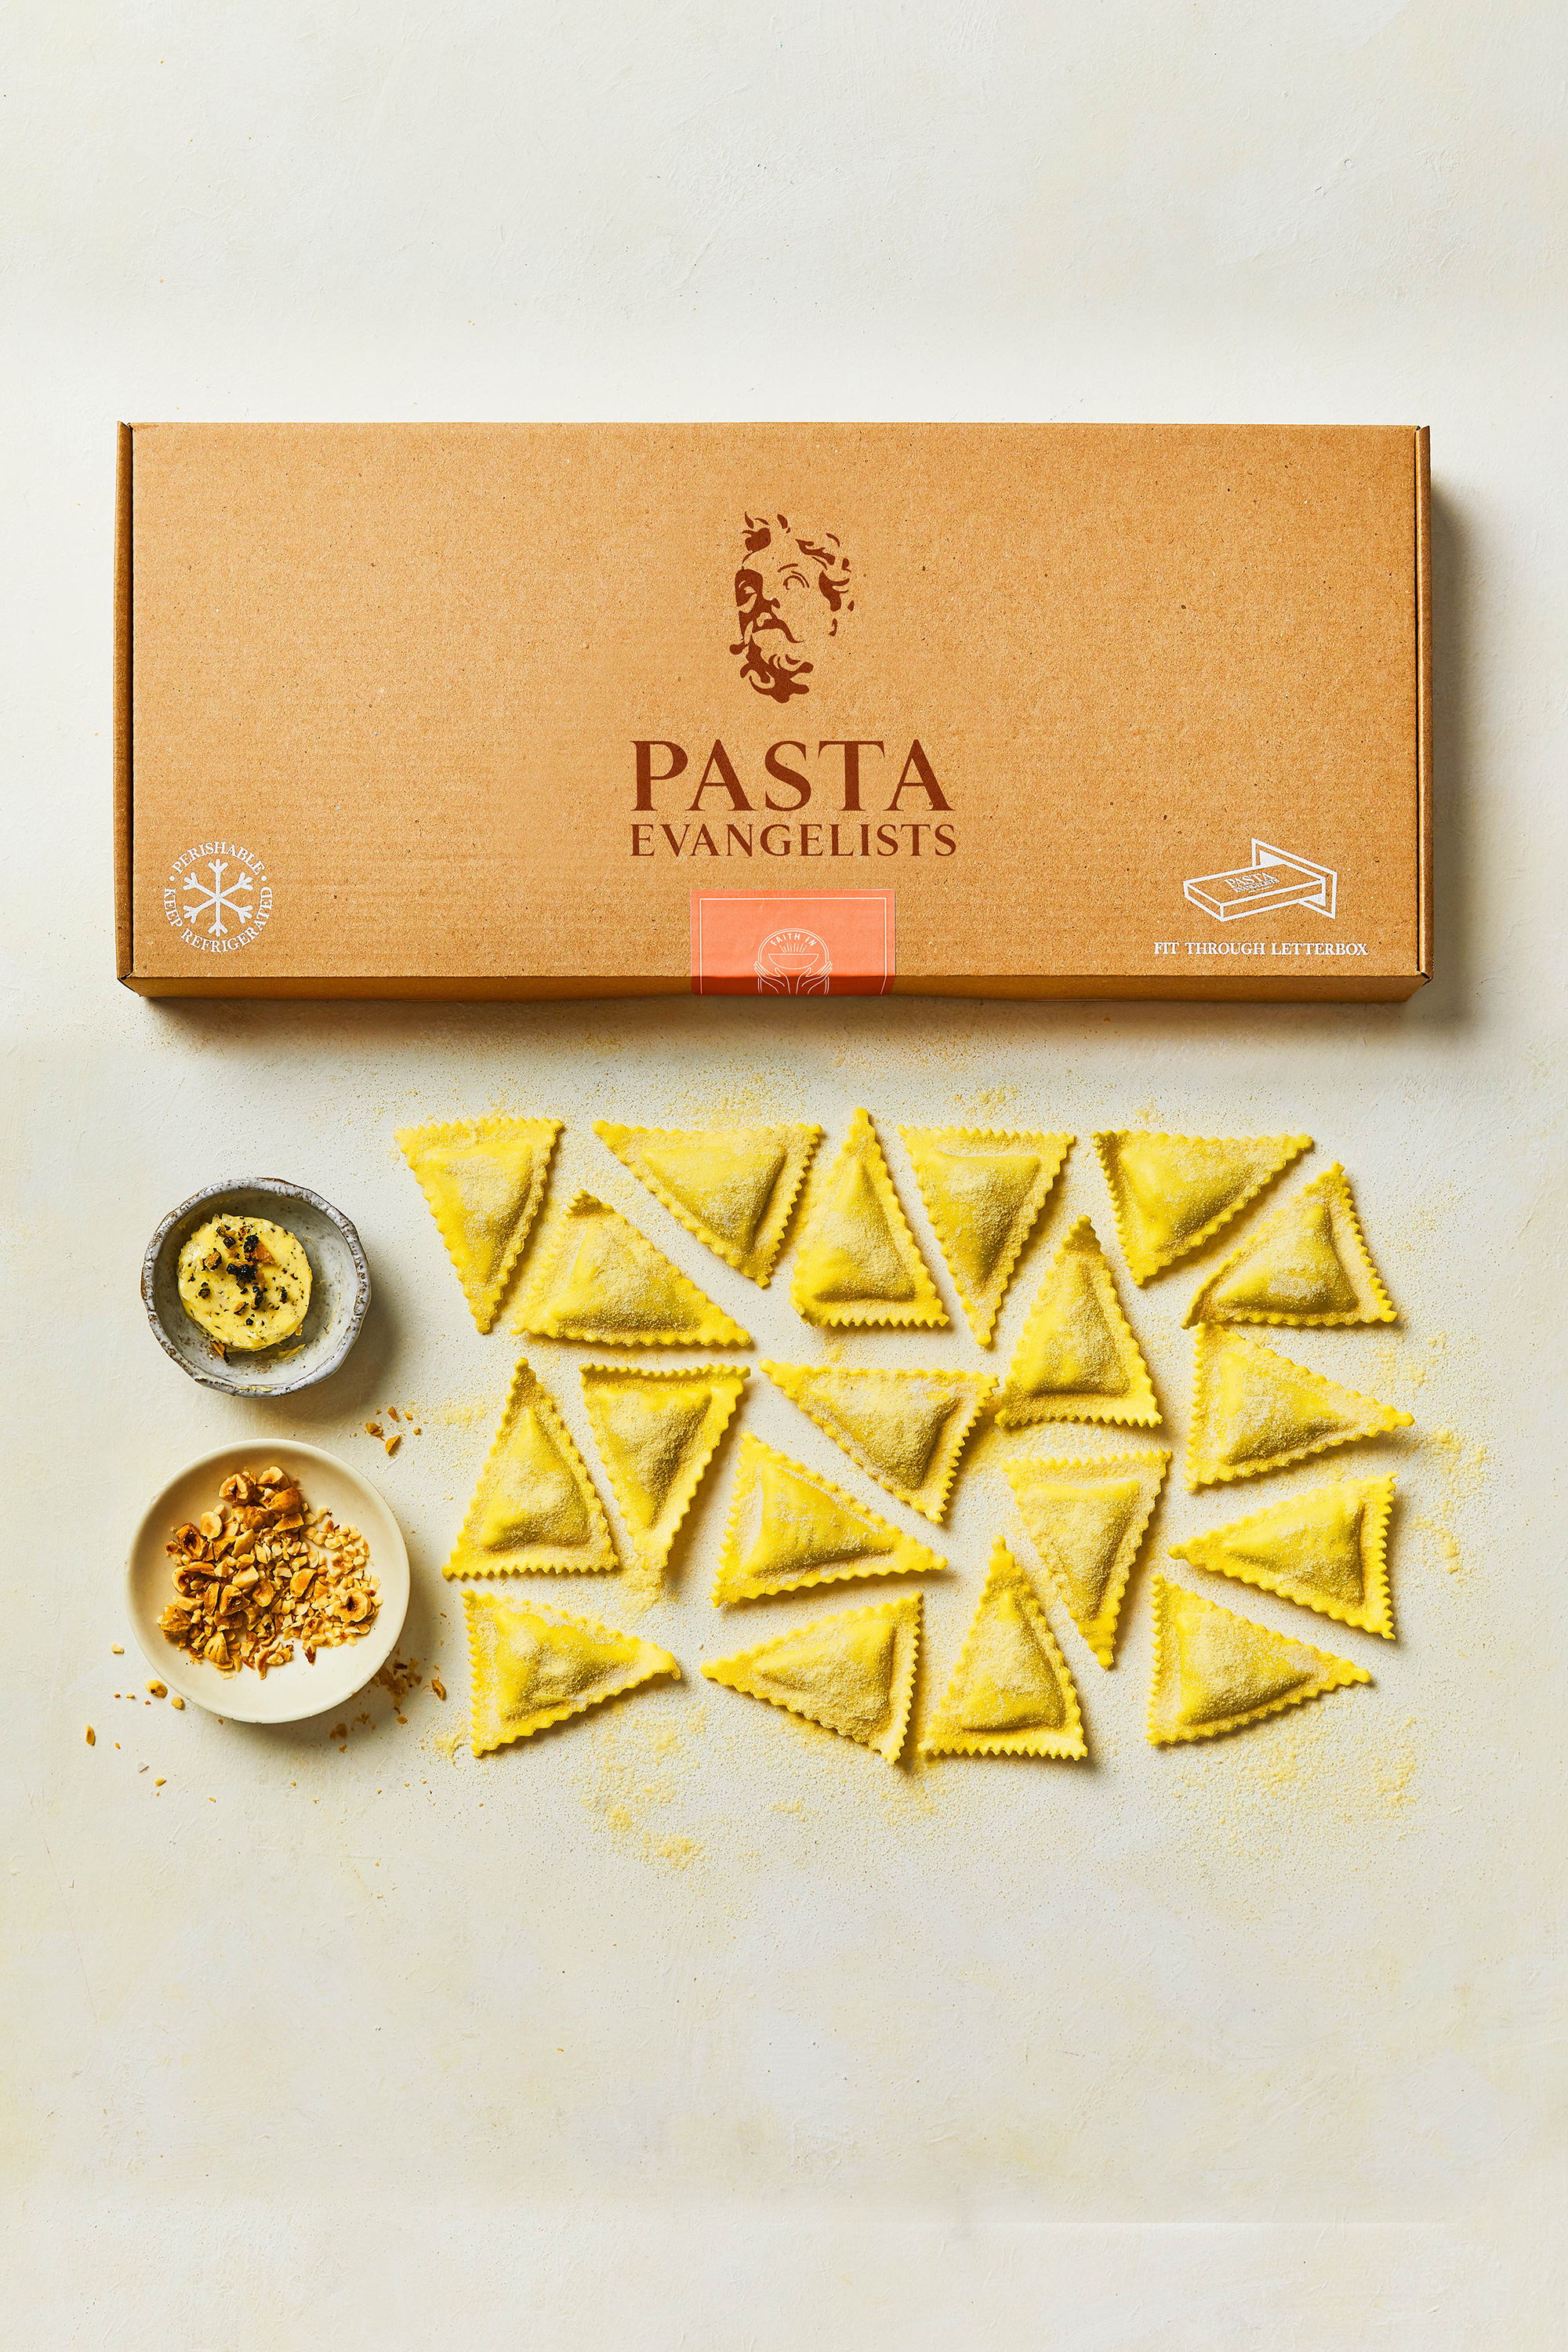 Pasta Evangelists offers a selection of delicious vegan options